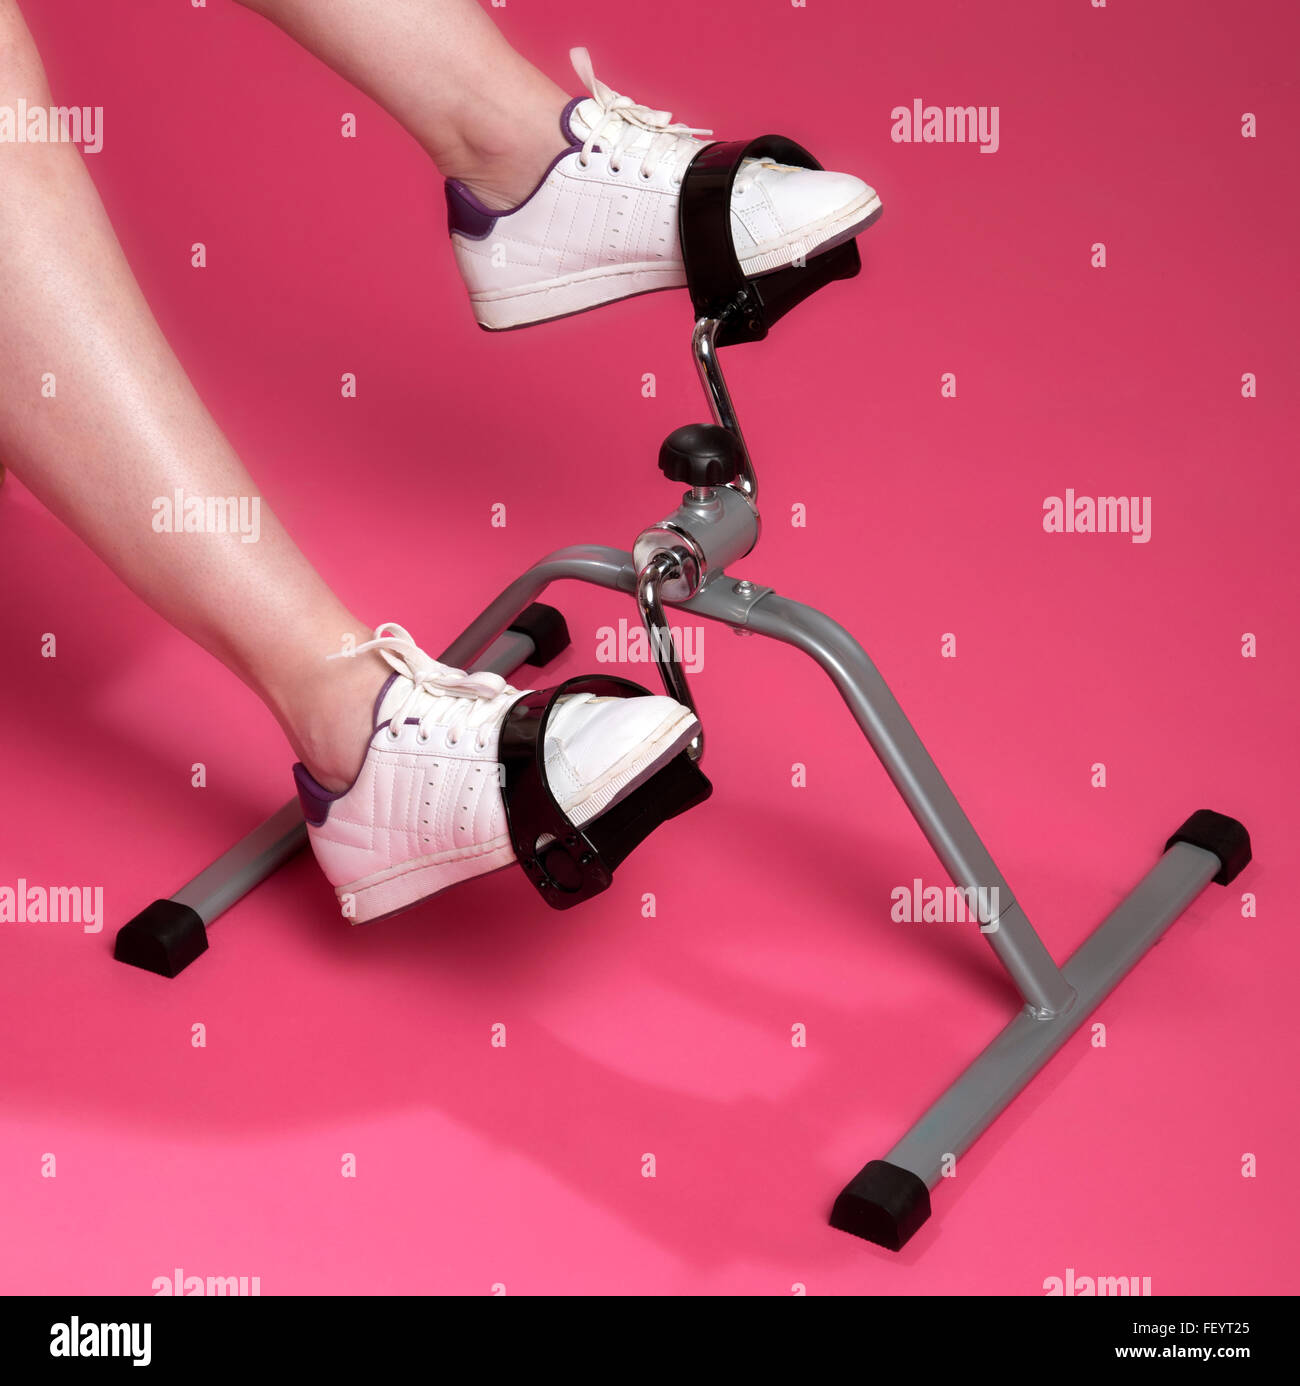 Exercising feet and ankles using an exercise machine Wearing trainers - Stock Image